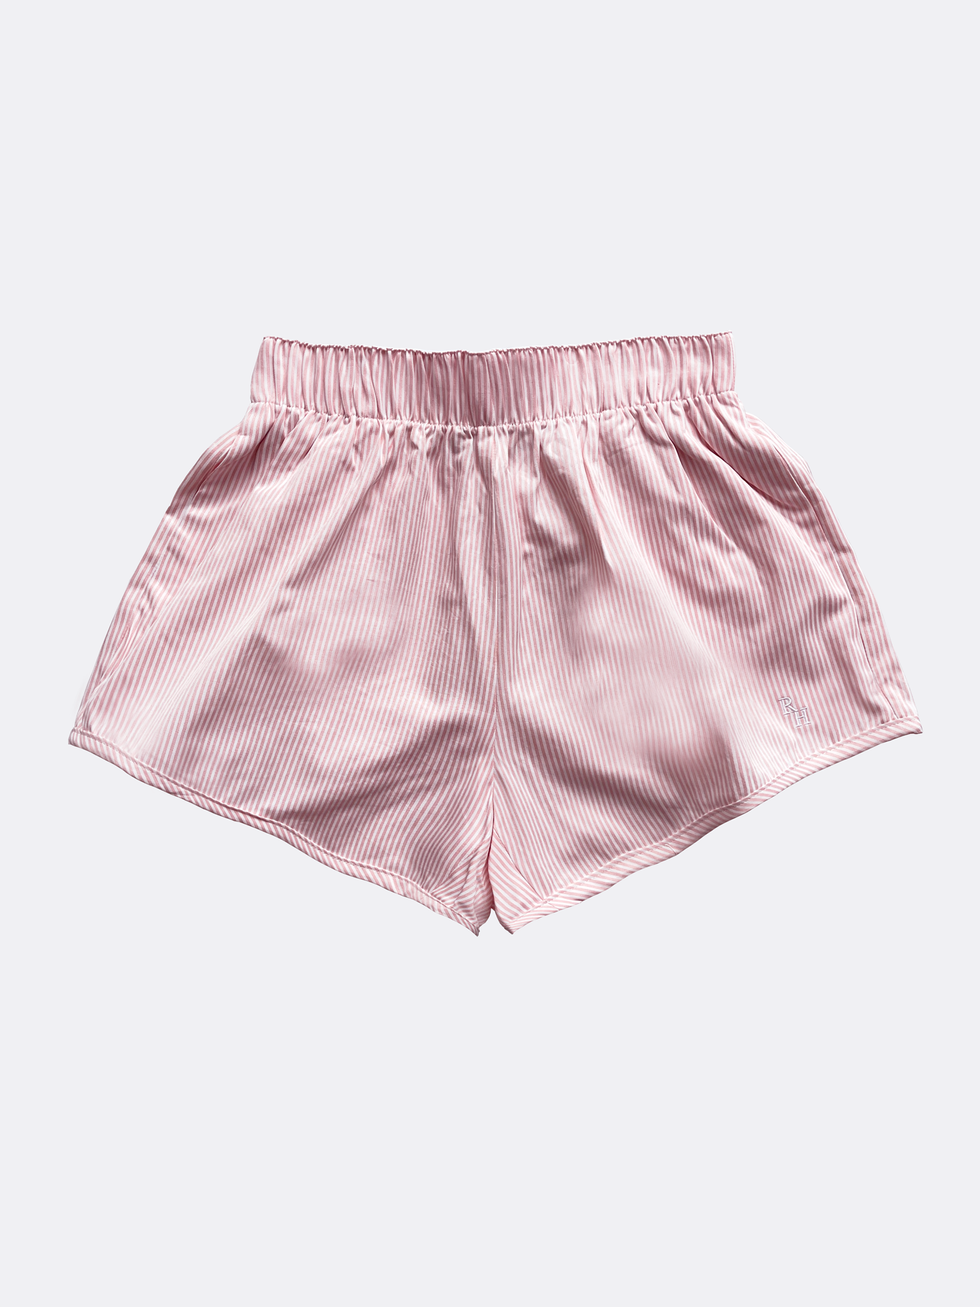 The Ferry Short Pink